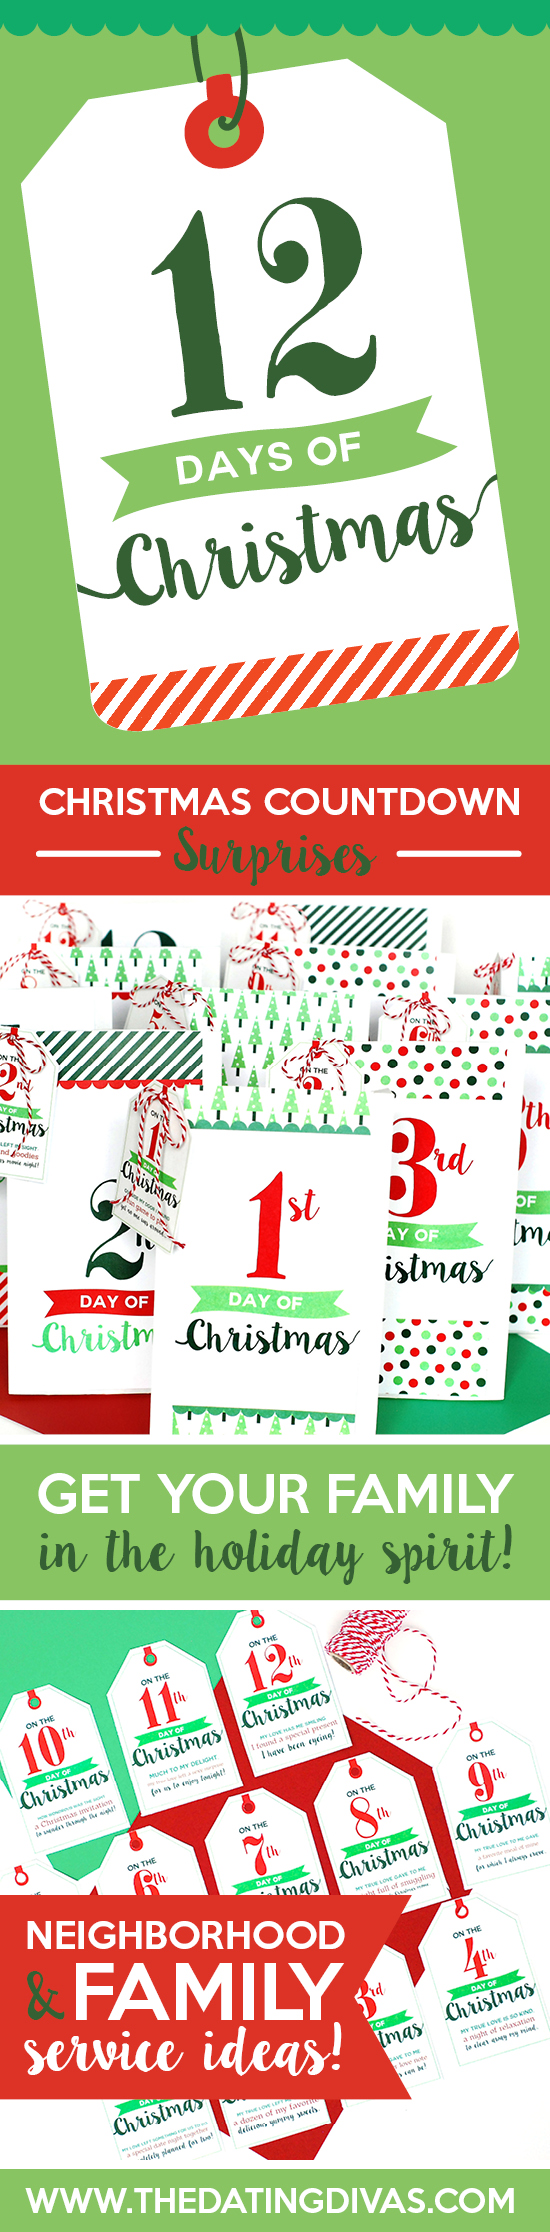 image regarding 12 Days of Christmas Printable known as 12 Times of Xmas Printable Assistance Thought - Drive